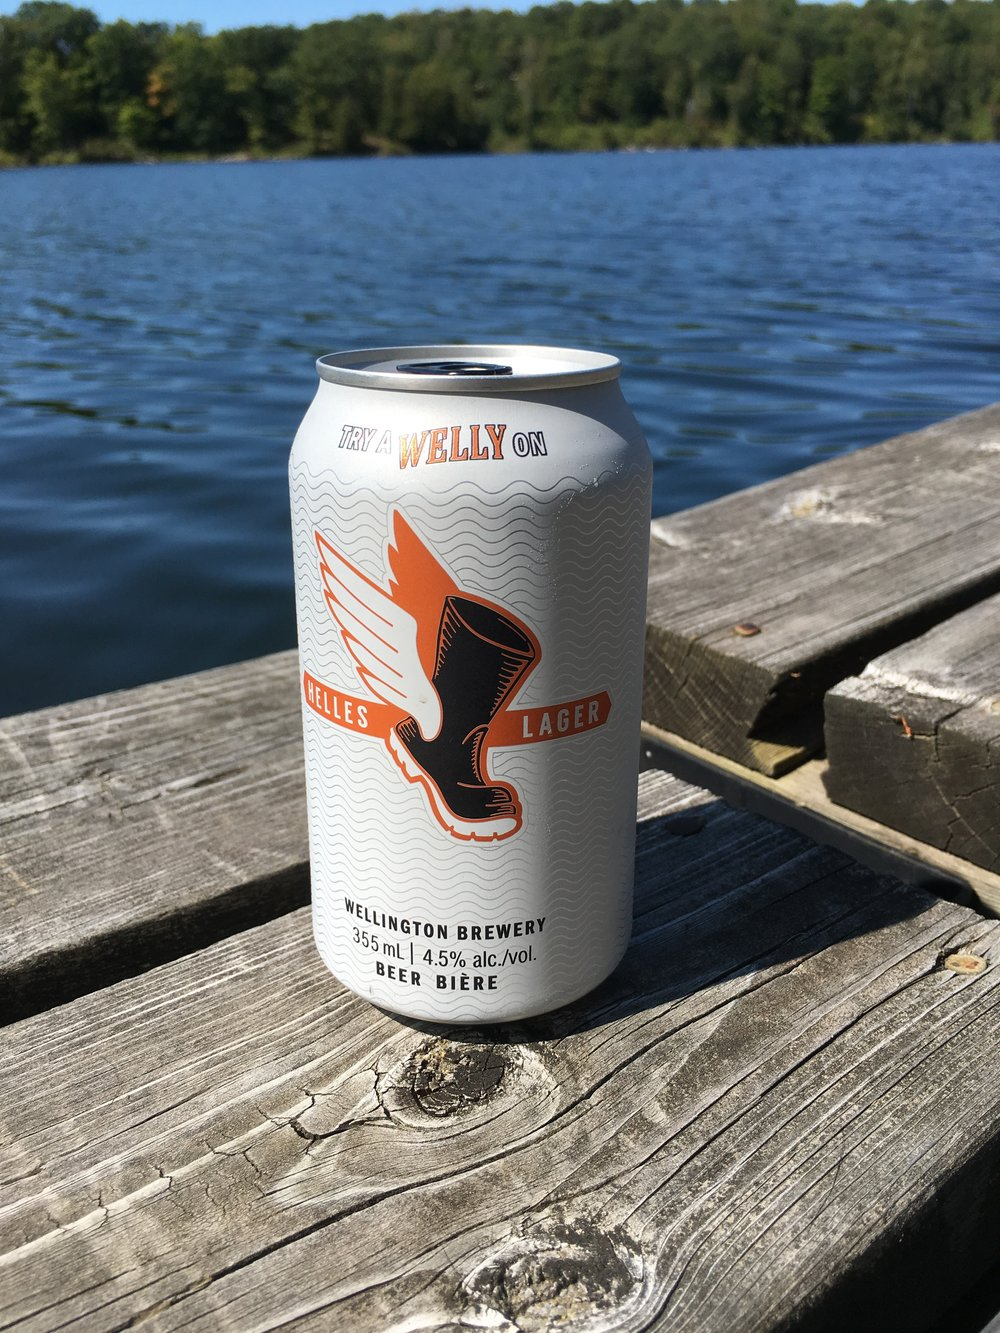 Wellington Brewery 's (Guelph, ON) Helles Lager, one of my go-to summer at the cottage beers.